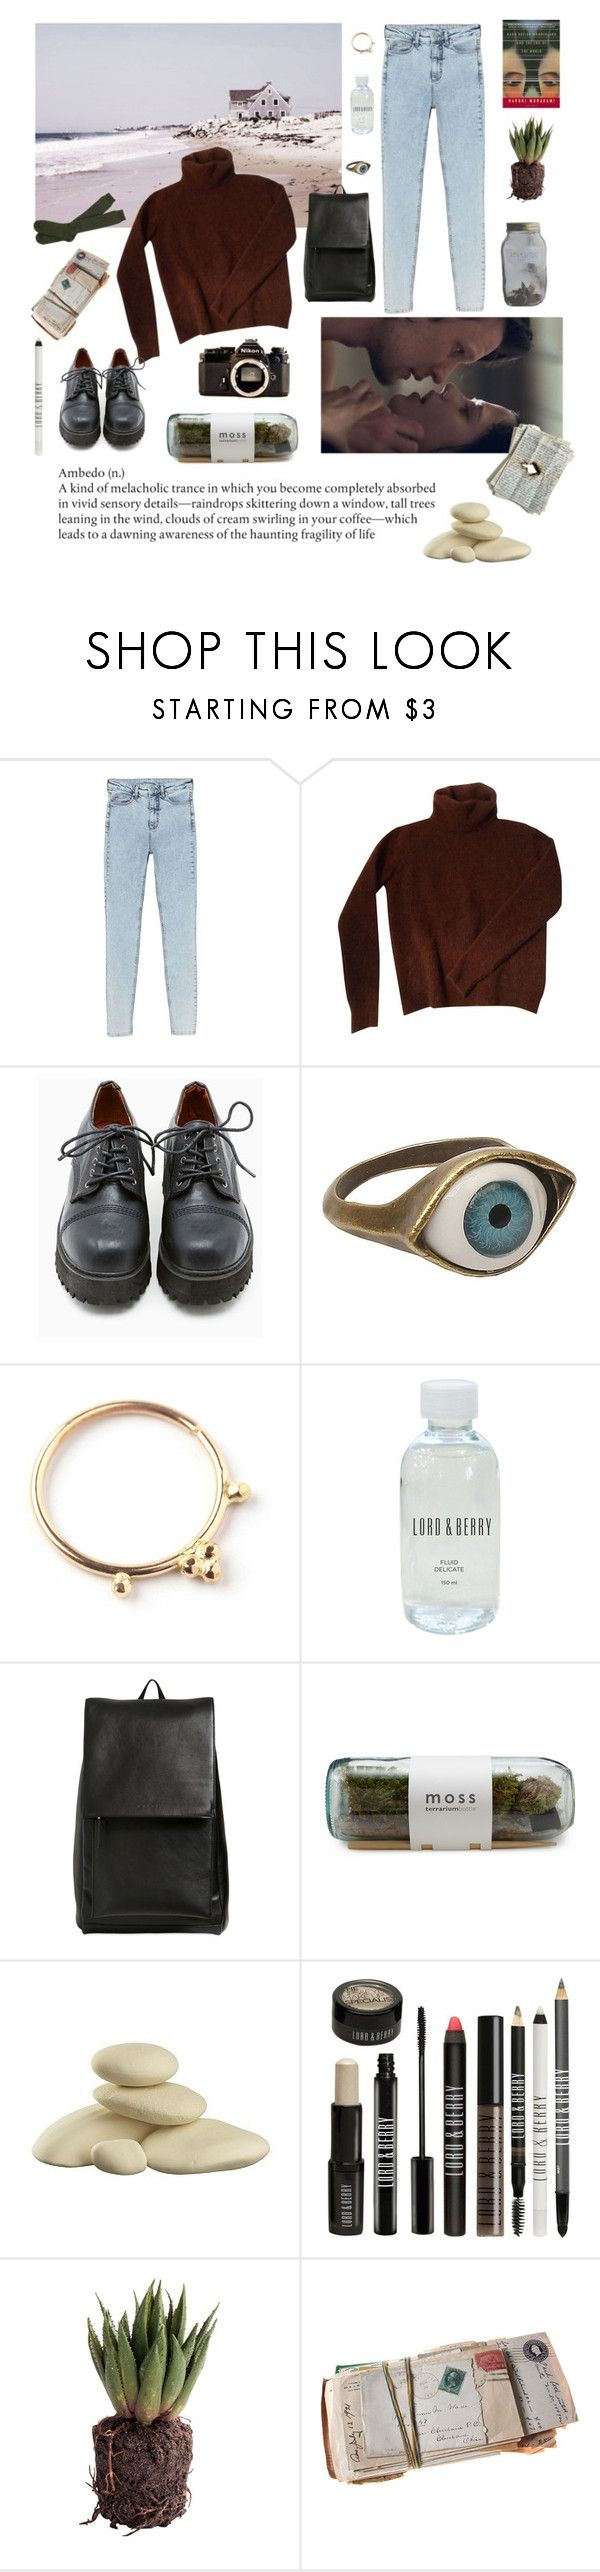 """Lost in one dark wave"" by asdf-fdsa on Polyvore featuring womb, Monki, Fendi, Sixtyseven, Retrò, Bullet, Lord & Berry, Marni, CB2 and Nikon"